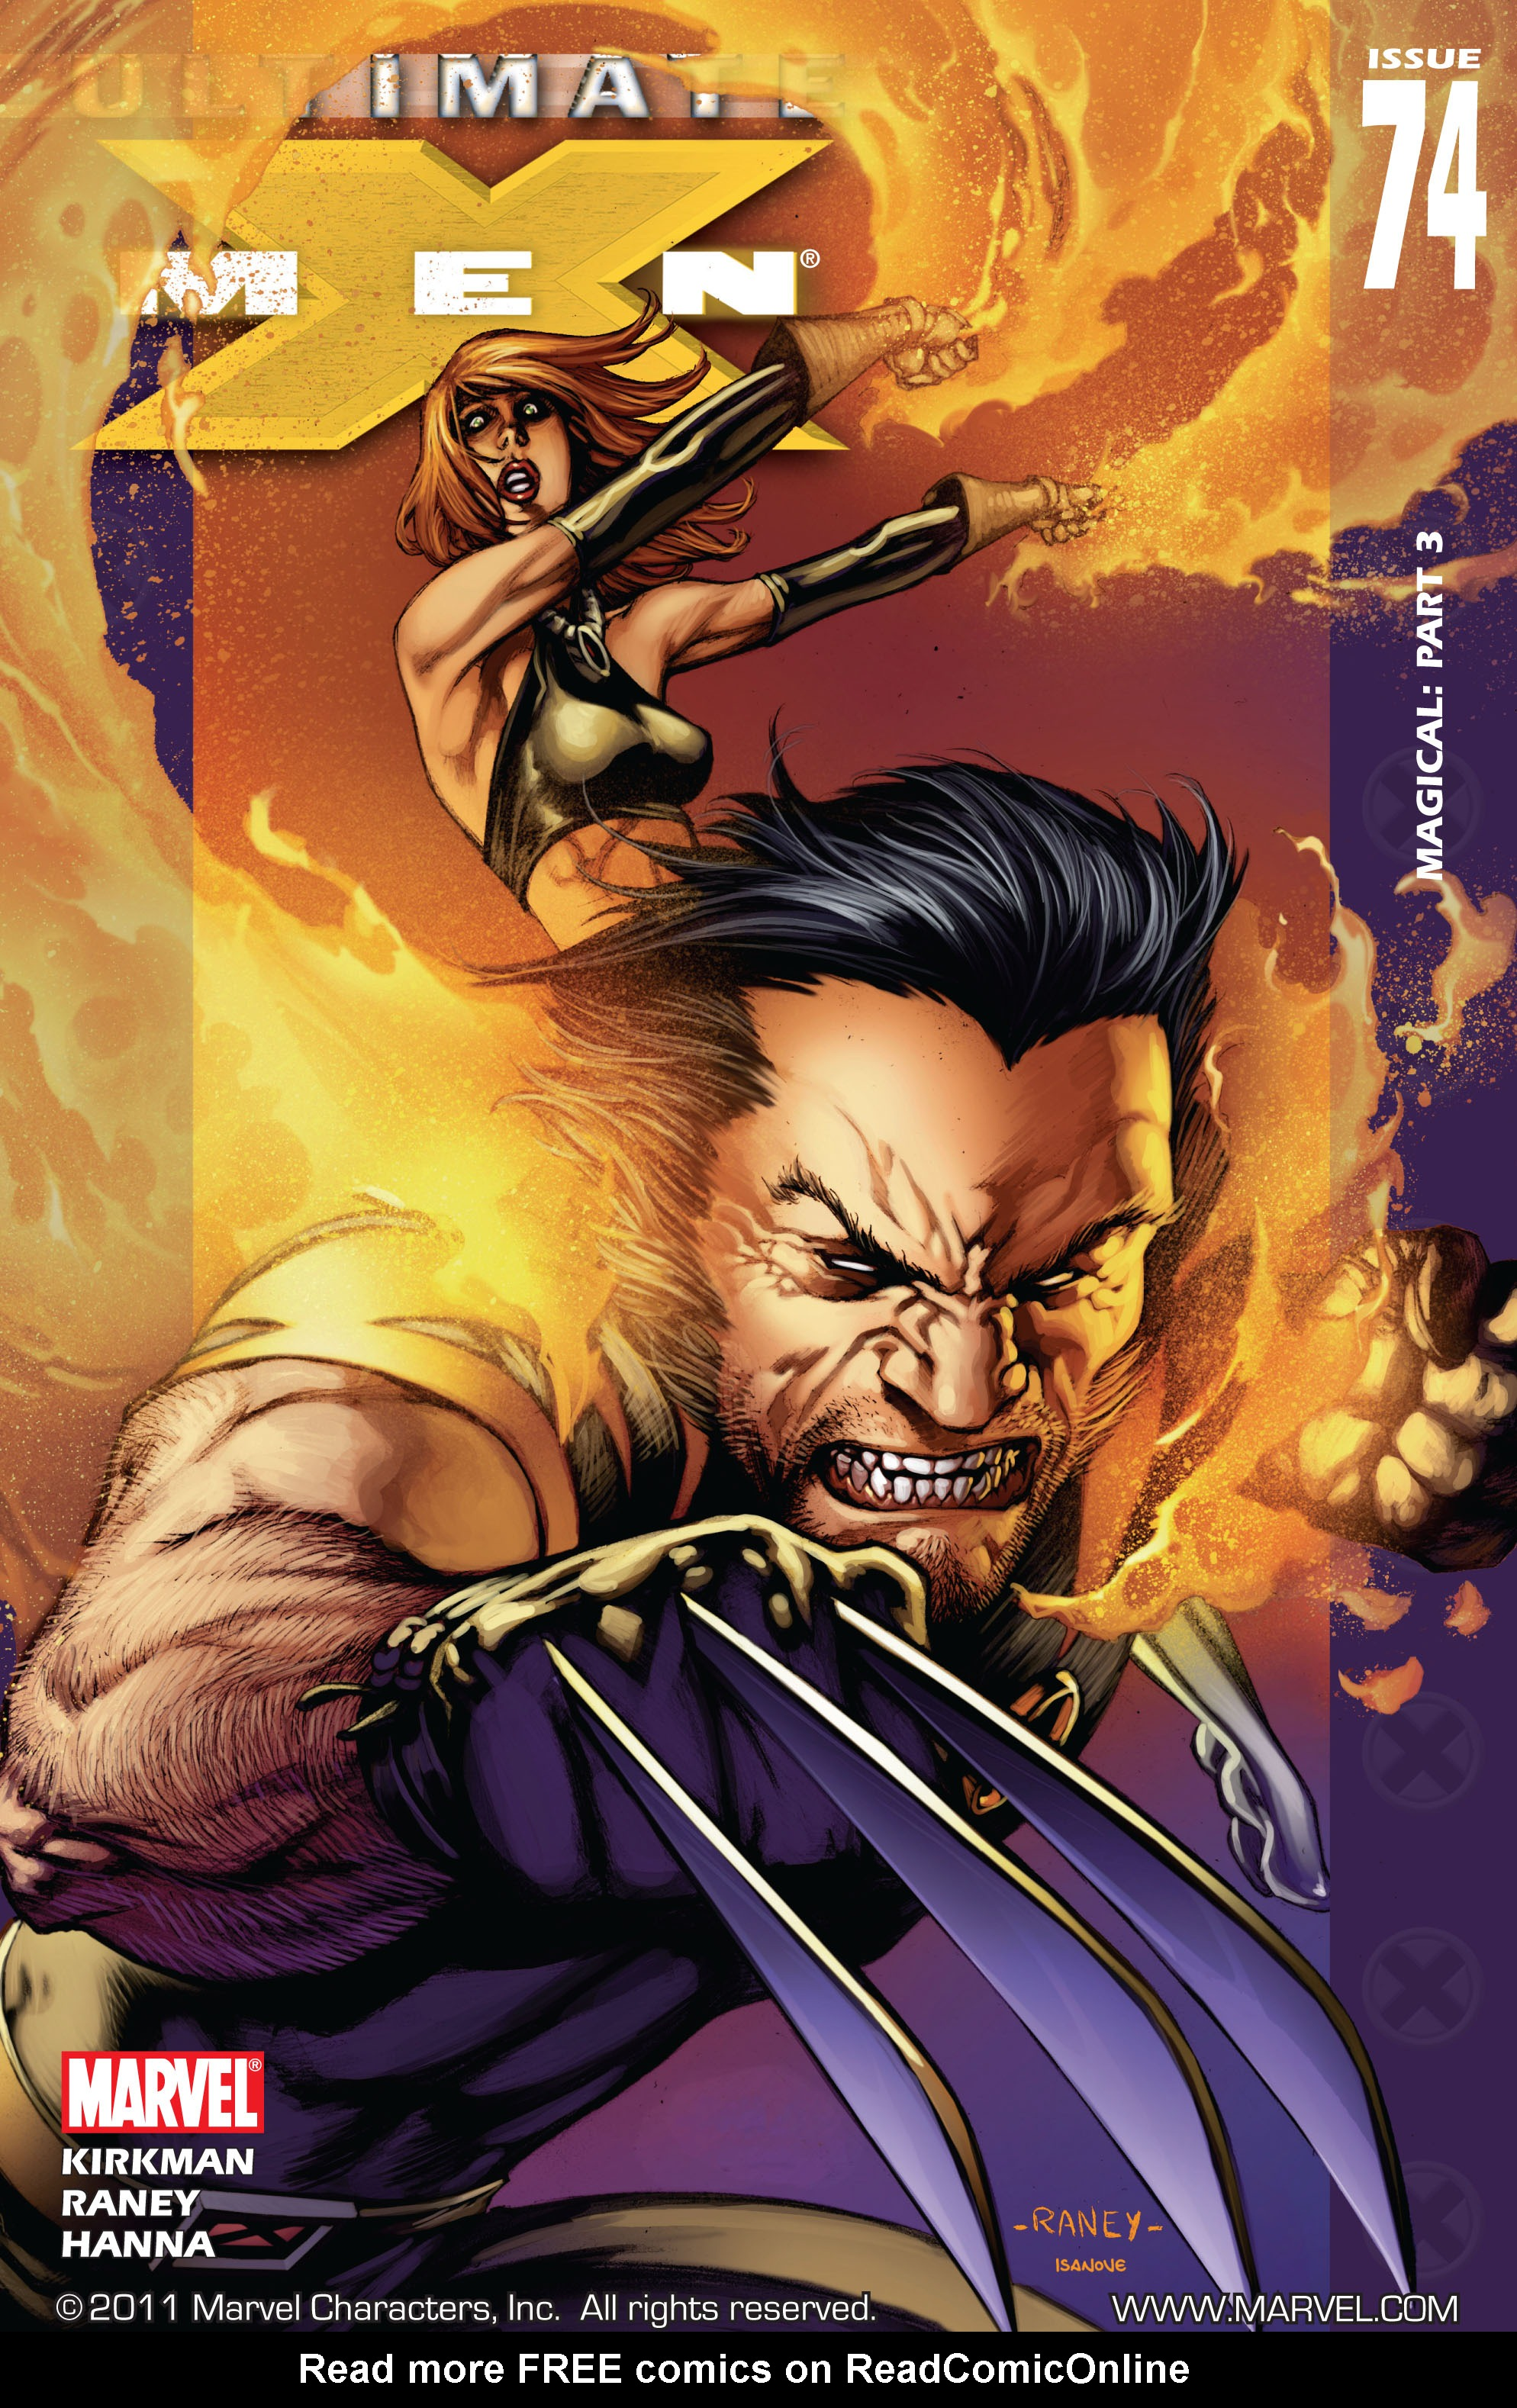 Read online Ultimate X-Men comic -  Issue #74 - 1